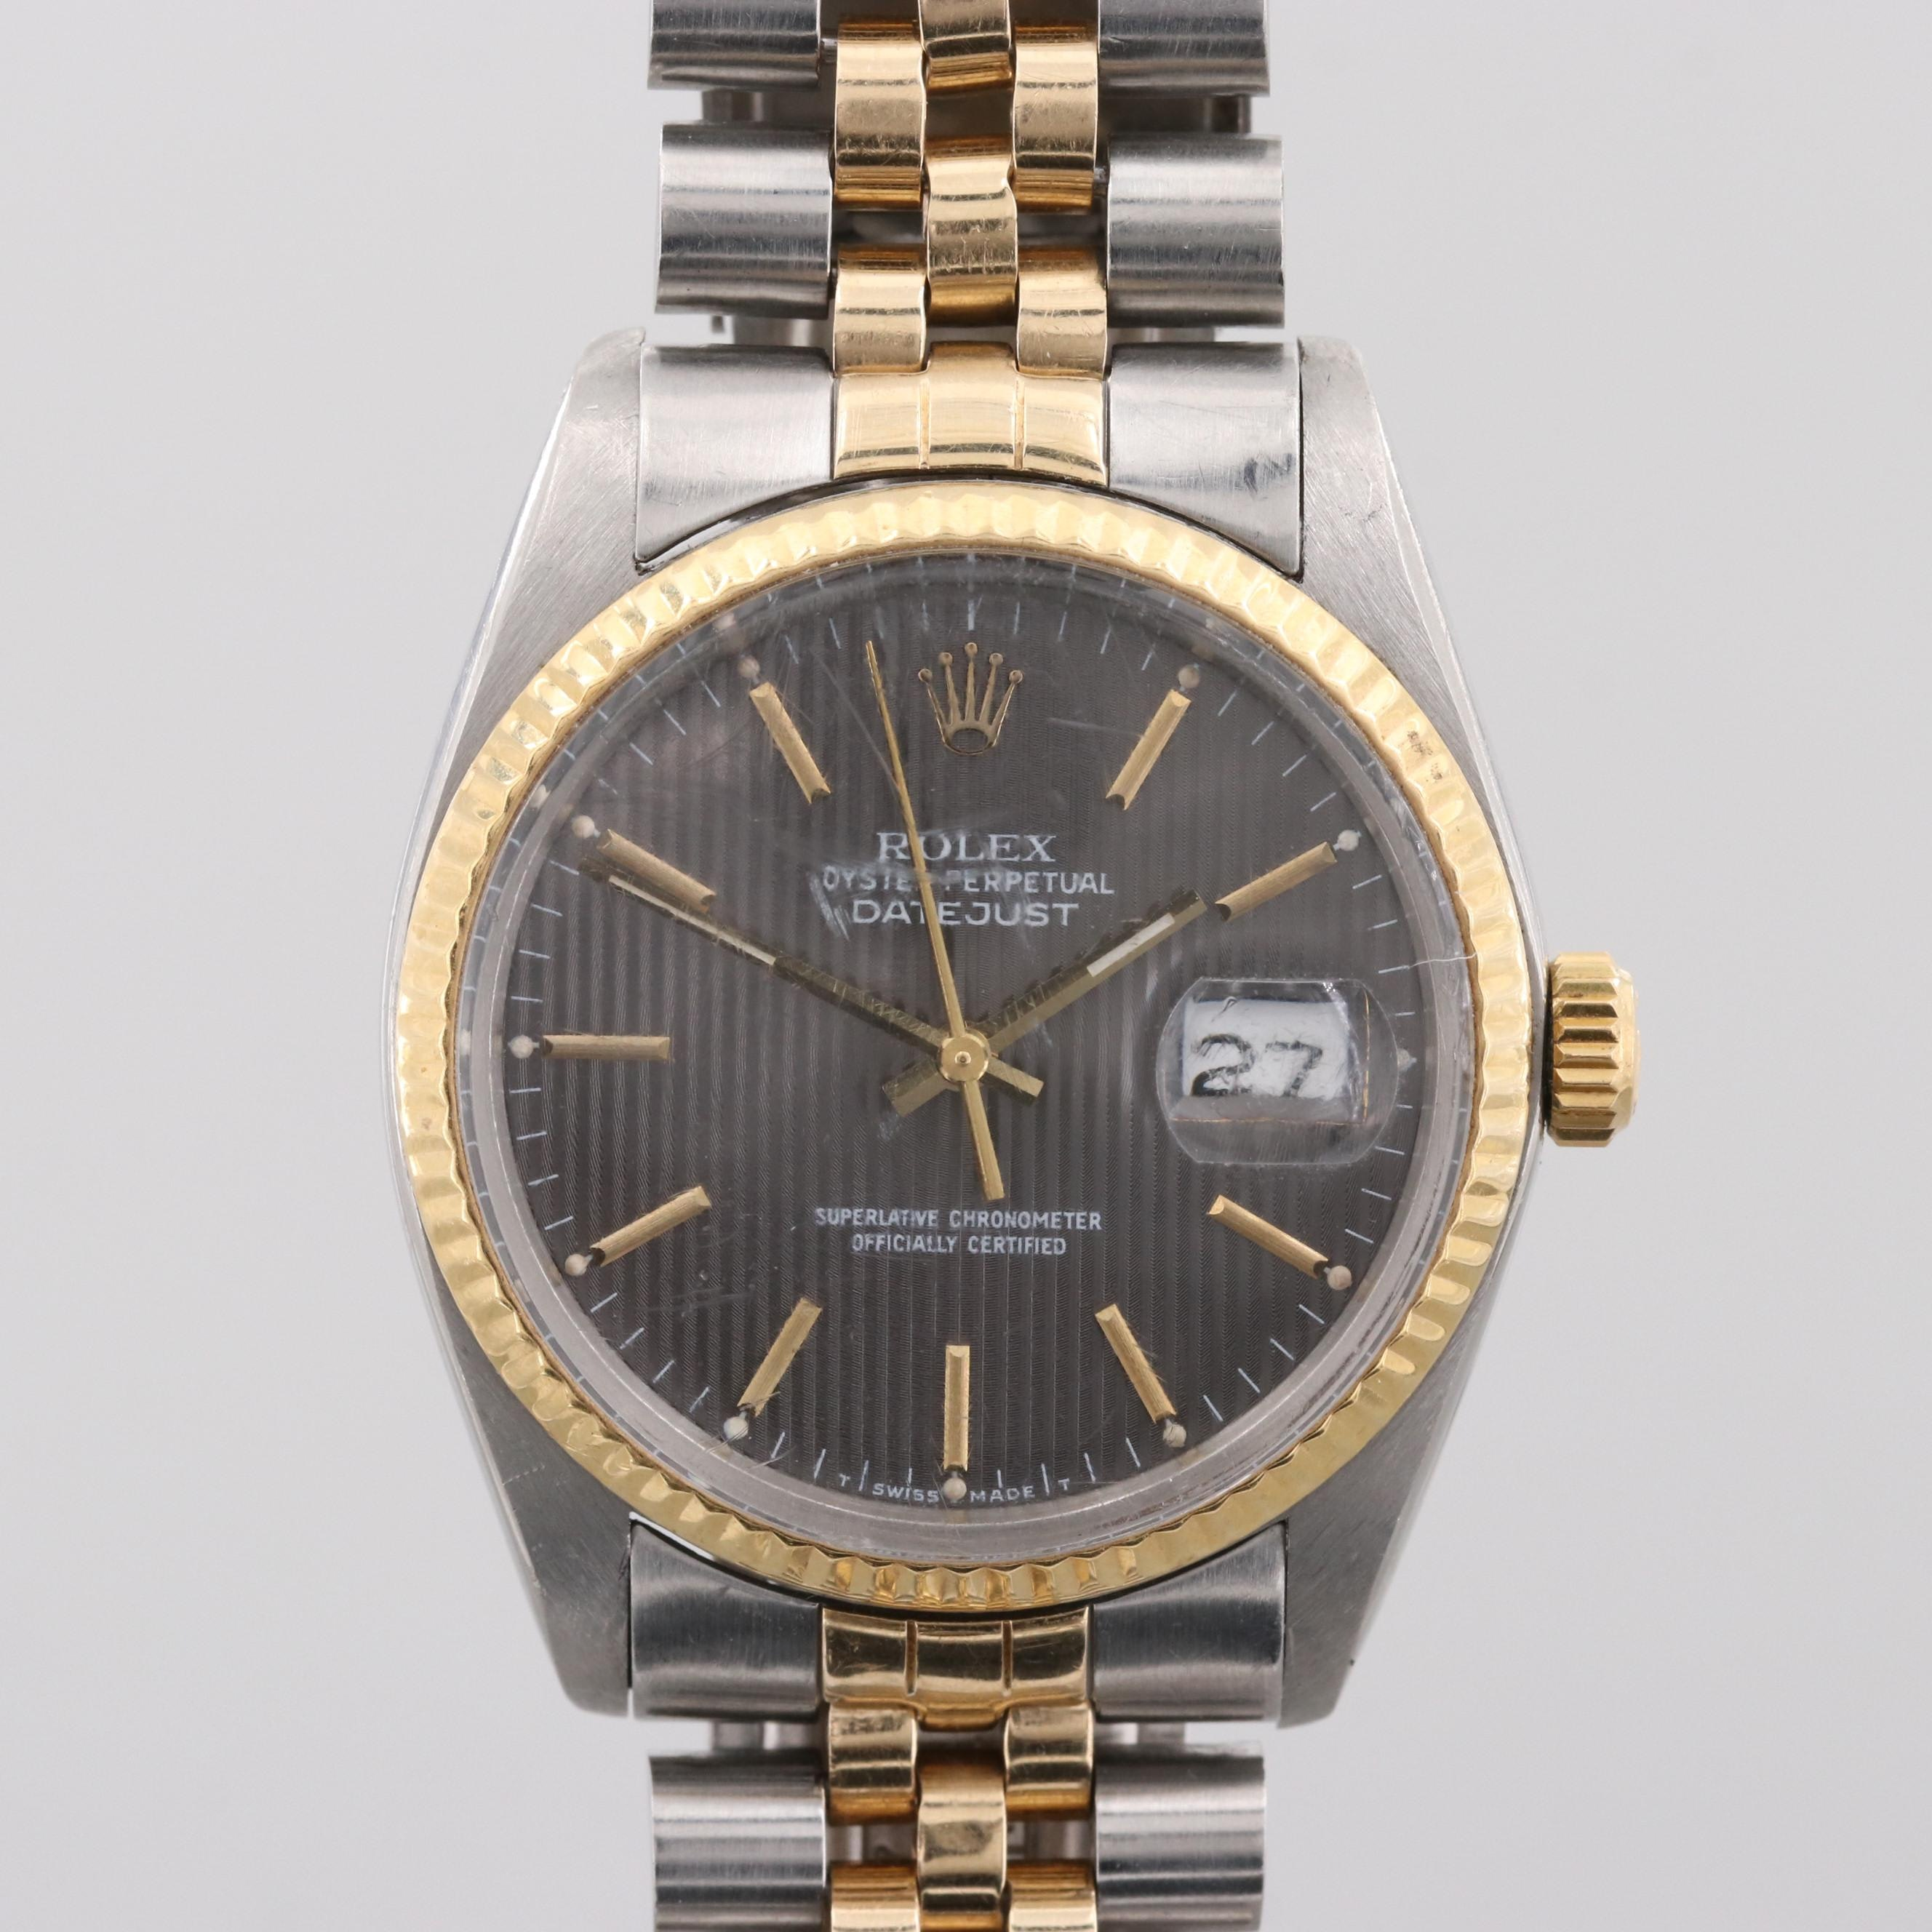 Rolex Datejust 18K Yellow Gold and Stainless Steel Wristwatch, 1979